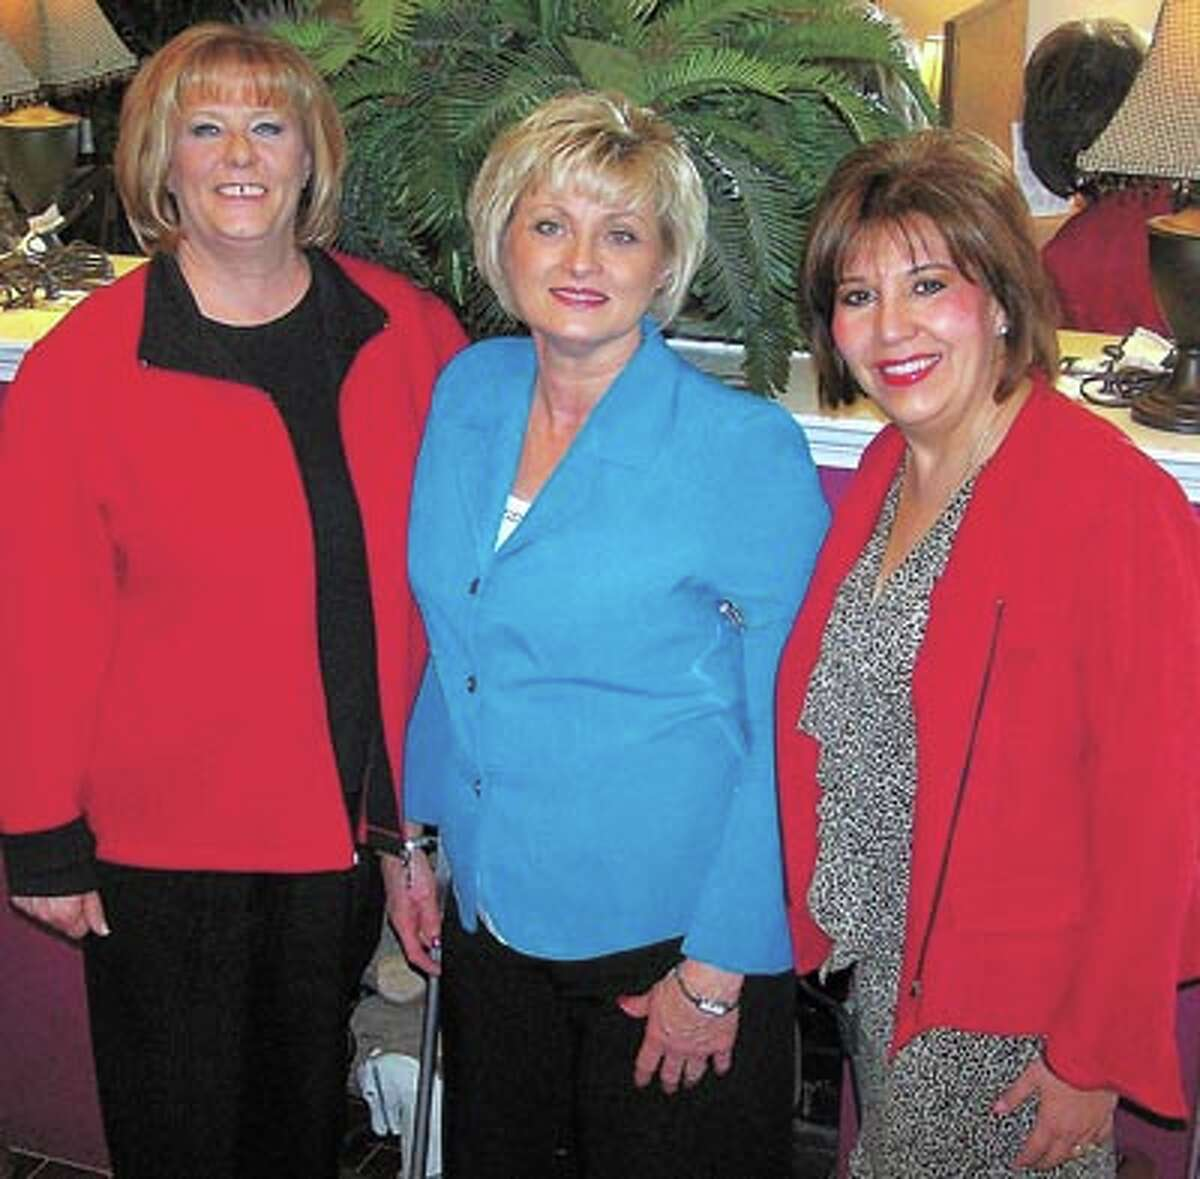 Debbie, Fran and Patricia say Staffing Resources is ready to supply the staff you need, when and for how long you need them. They also do fulltime placements. Call 432-684-0527 to get your staffing needs filled!